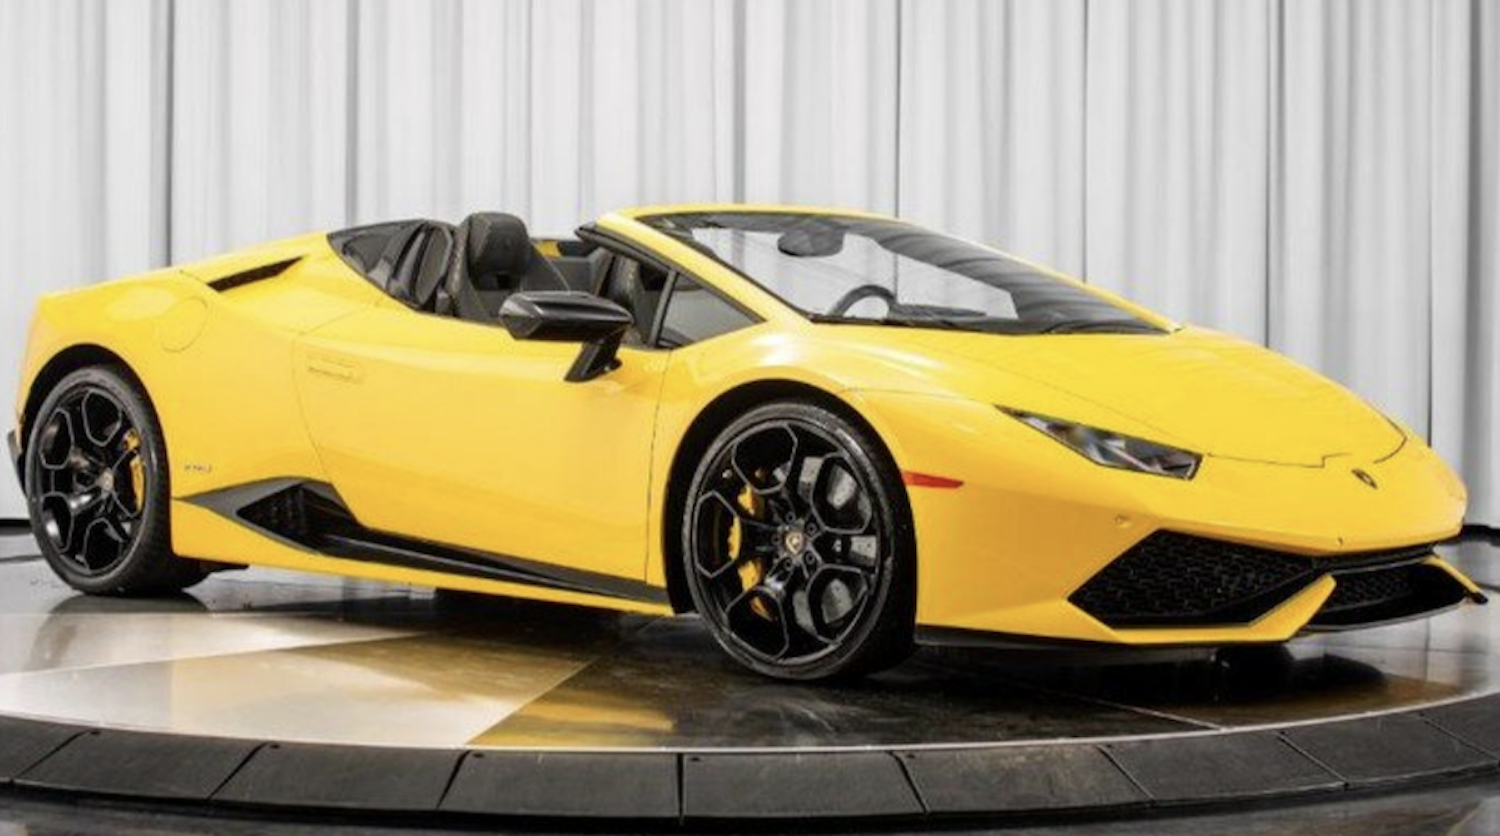 Rent Lamborghini Huracan Exotic car By rental Exotic-Luxury-Rental.com